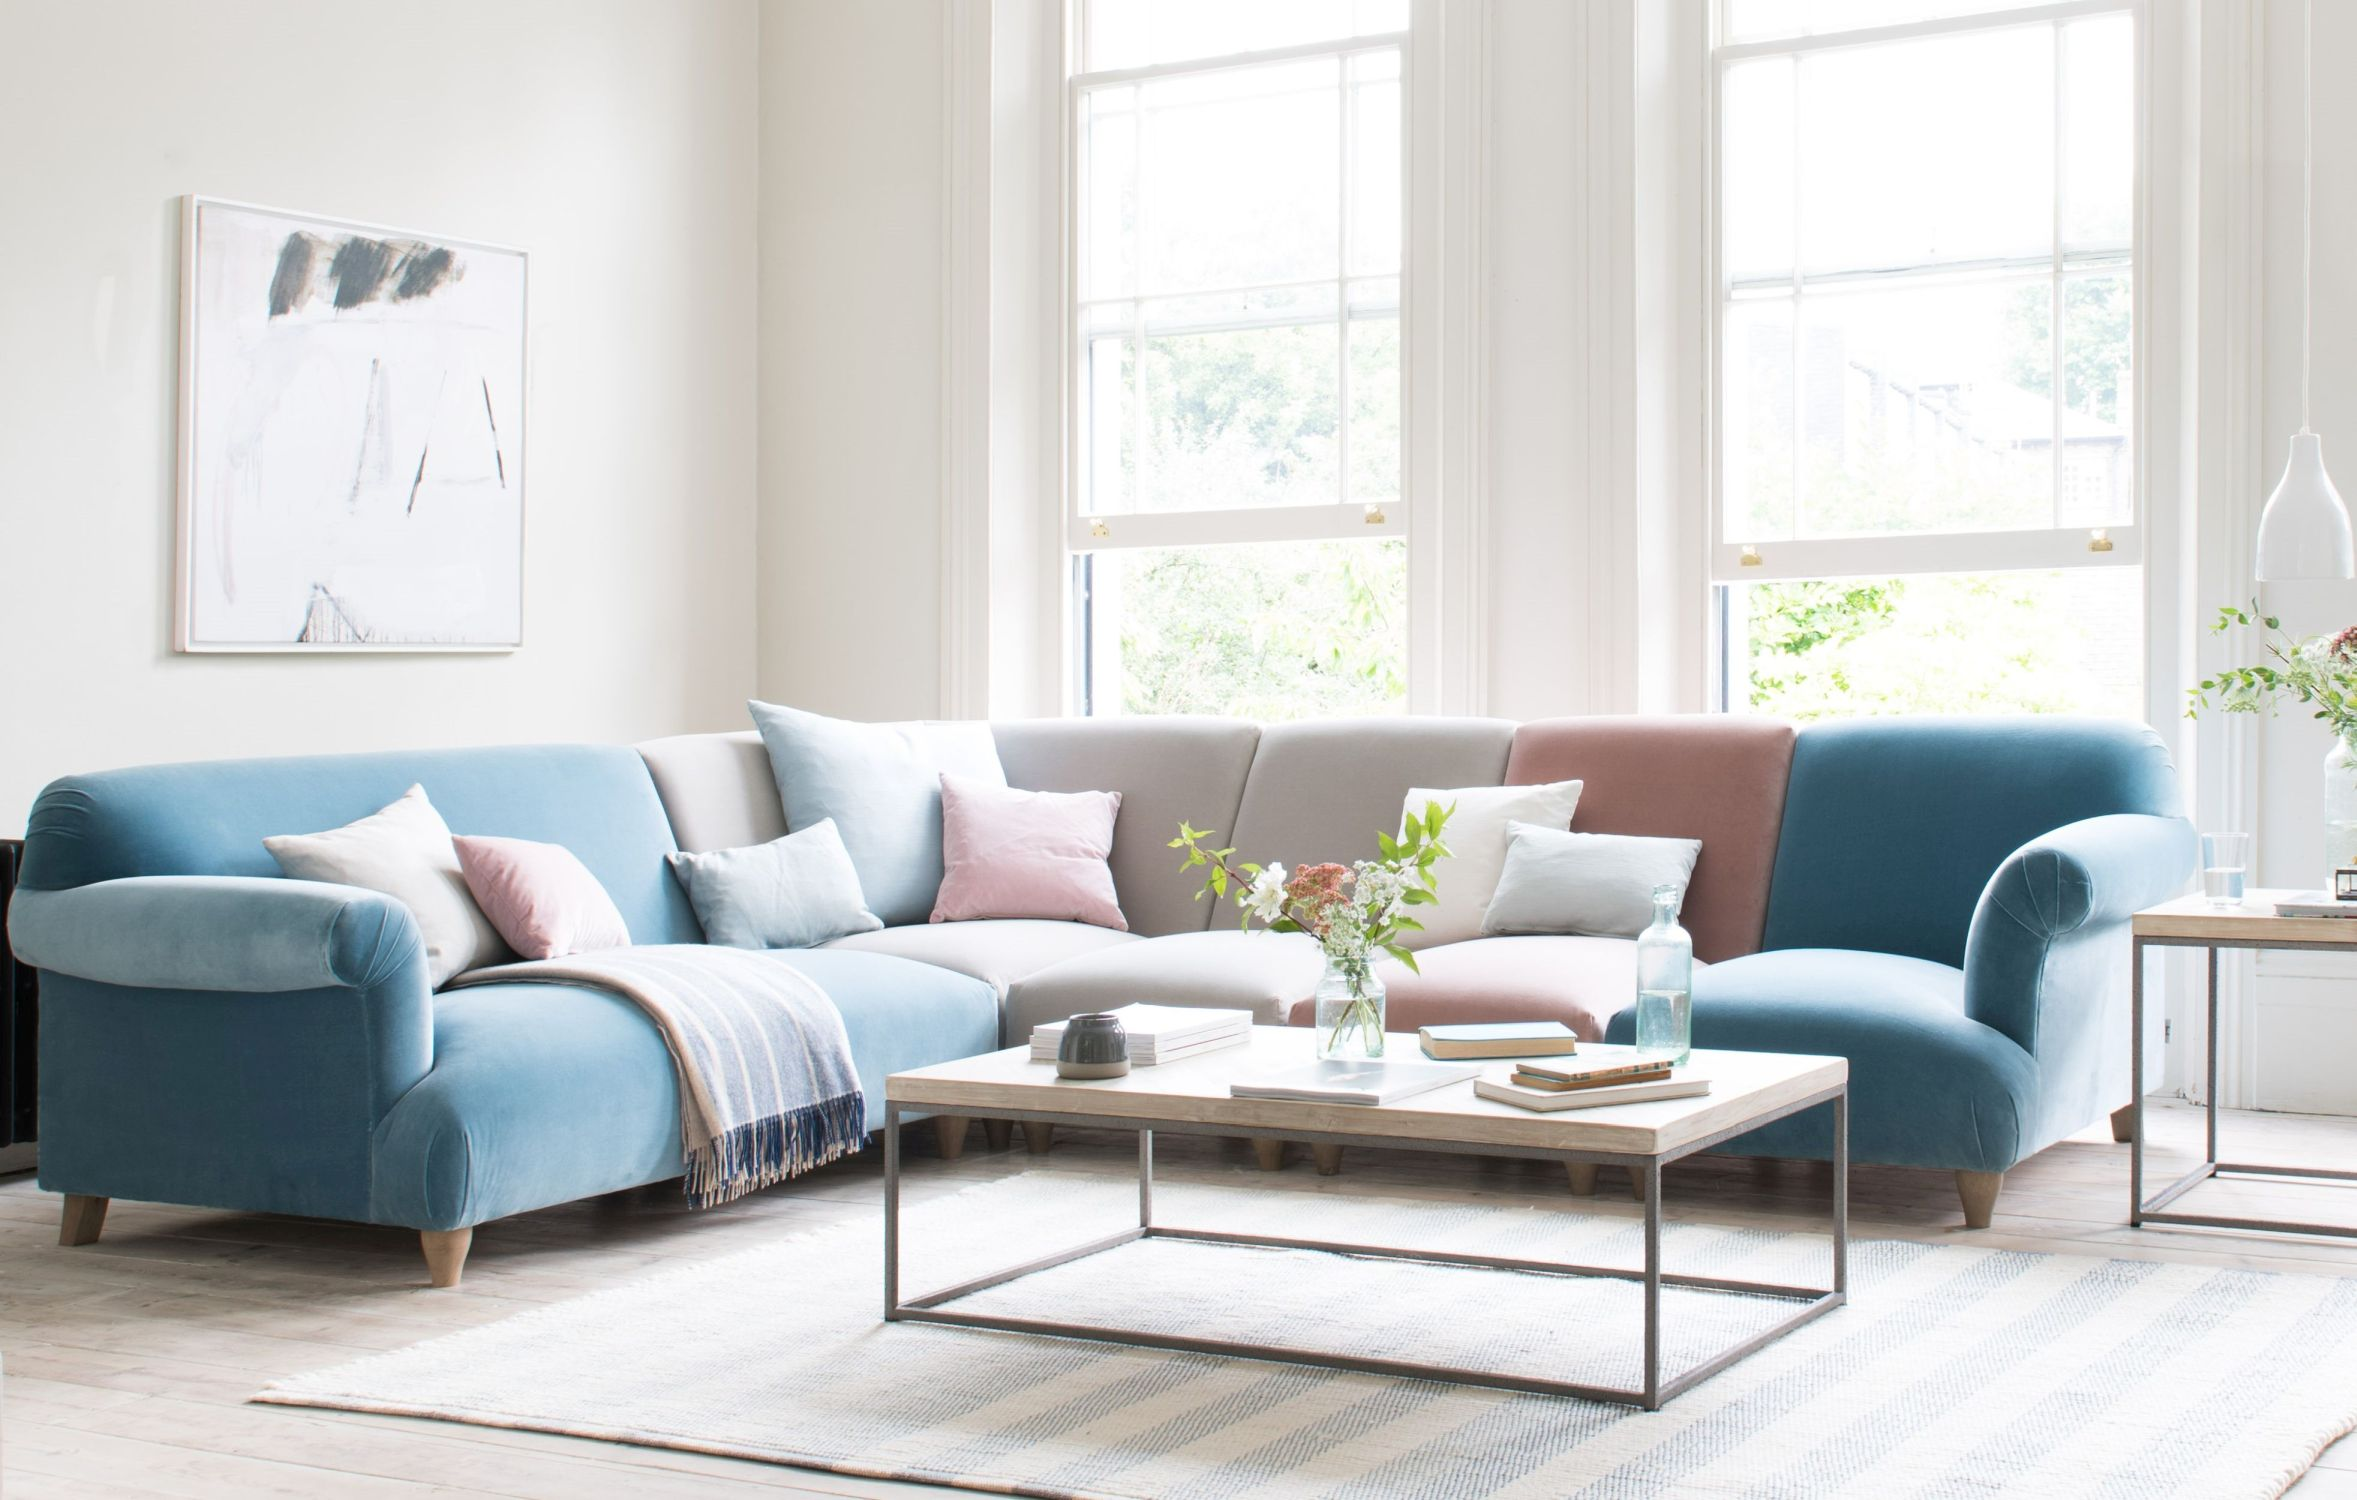 sitting pretty sofas rattan sofa beds everything you need to know before